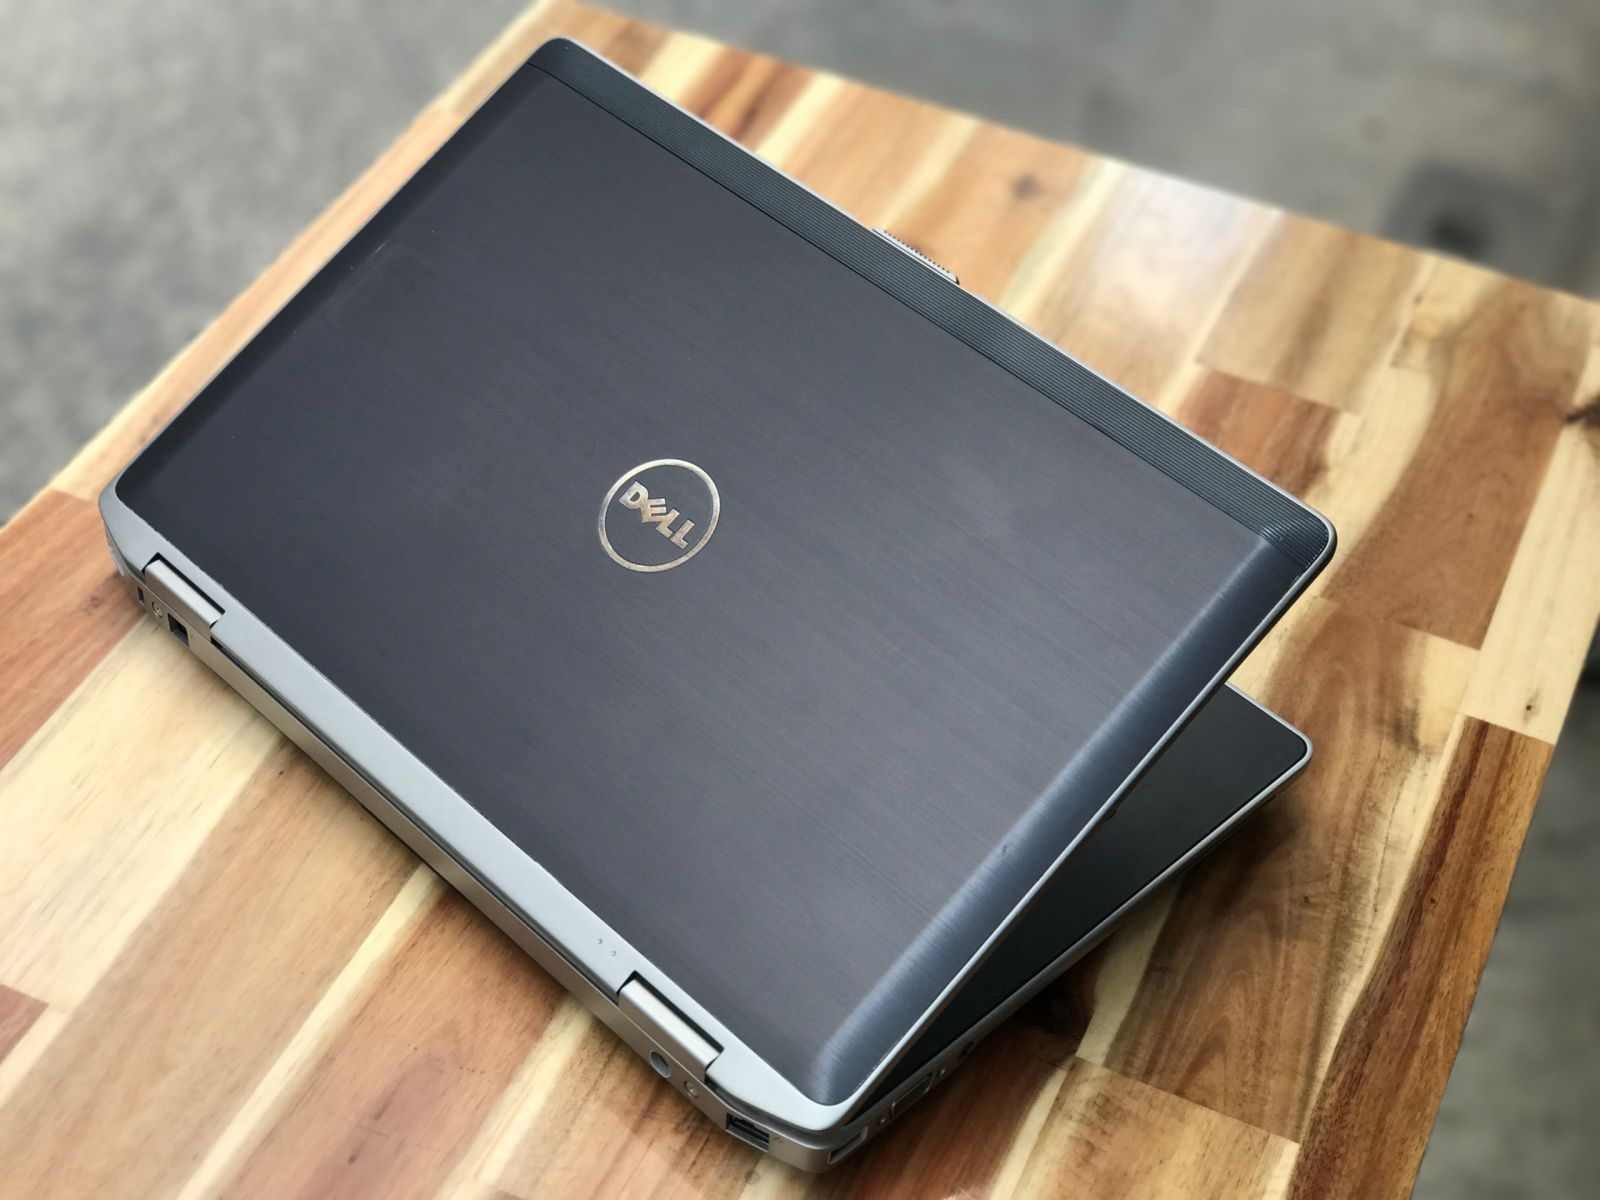 "Dell Latitude E6520 i5 2520M | RAM 4 GB | HDD 250G | 15.6"" HD 